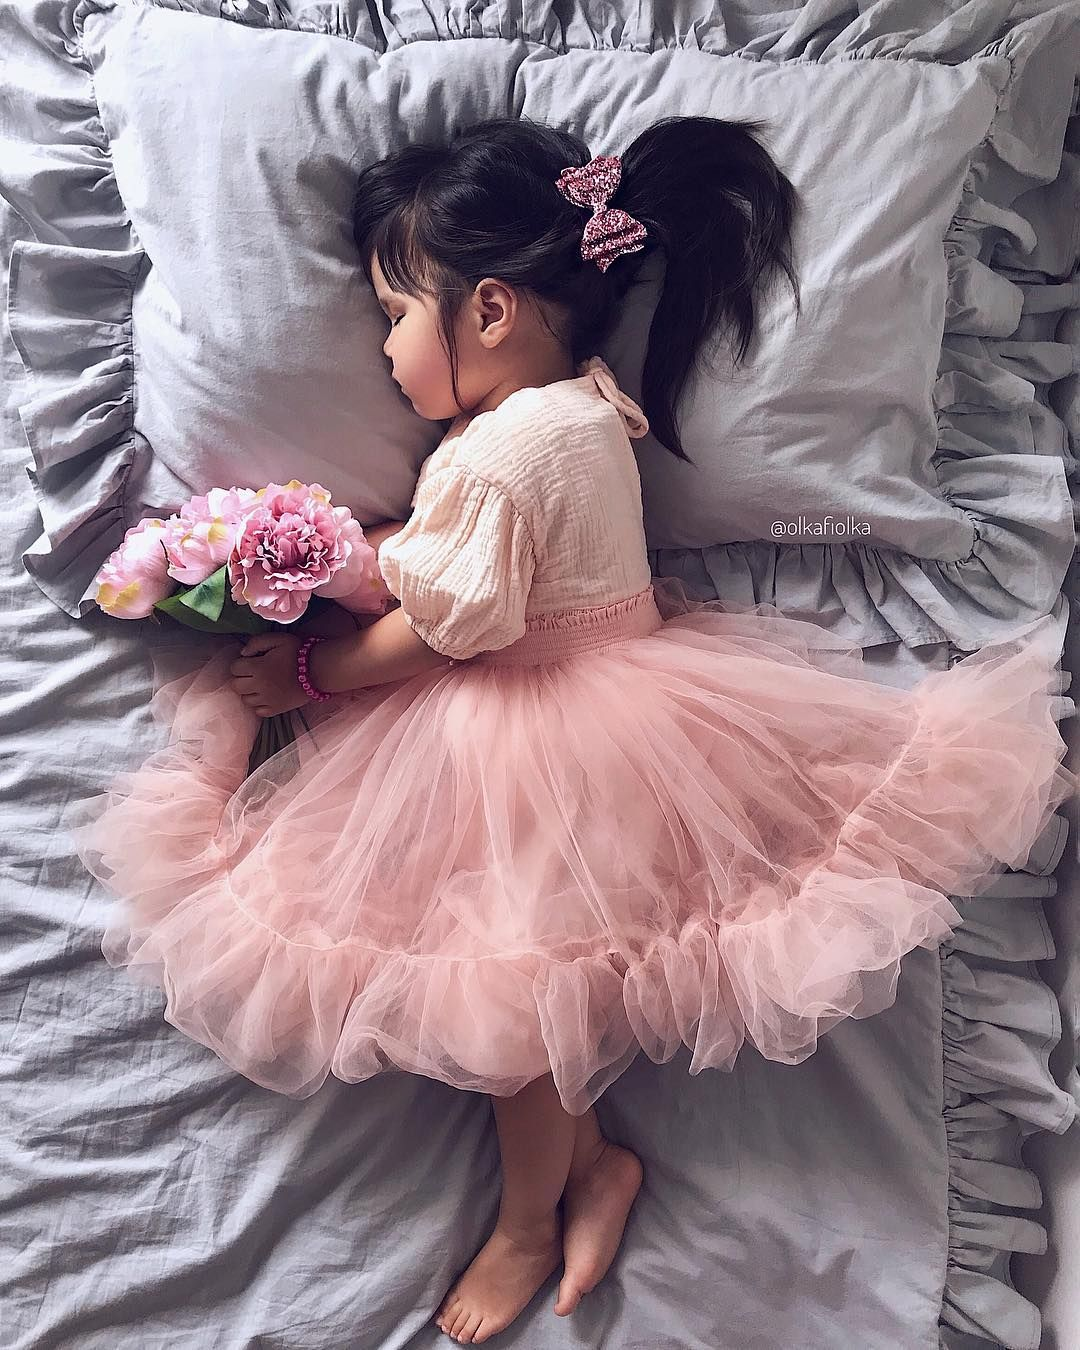 bedd3b2e6d Sweetest pic by @olkafiolka of the 'Anna' babydoll and 'Romantic' tutu skirt  in ballet pink. Toddler fashion | baby ballerina | Aubrie